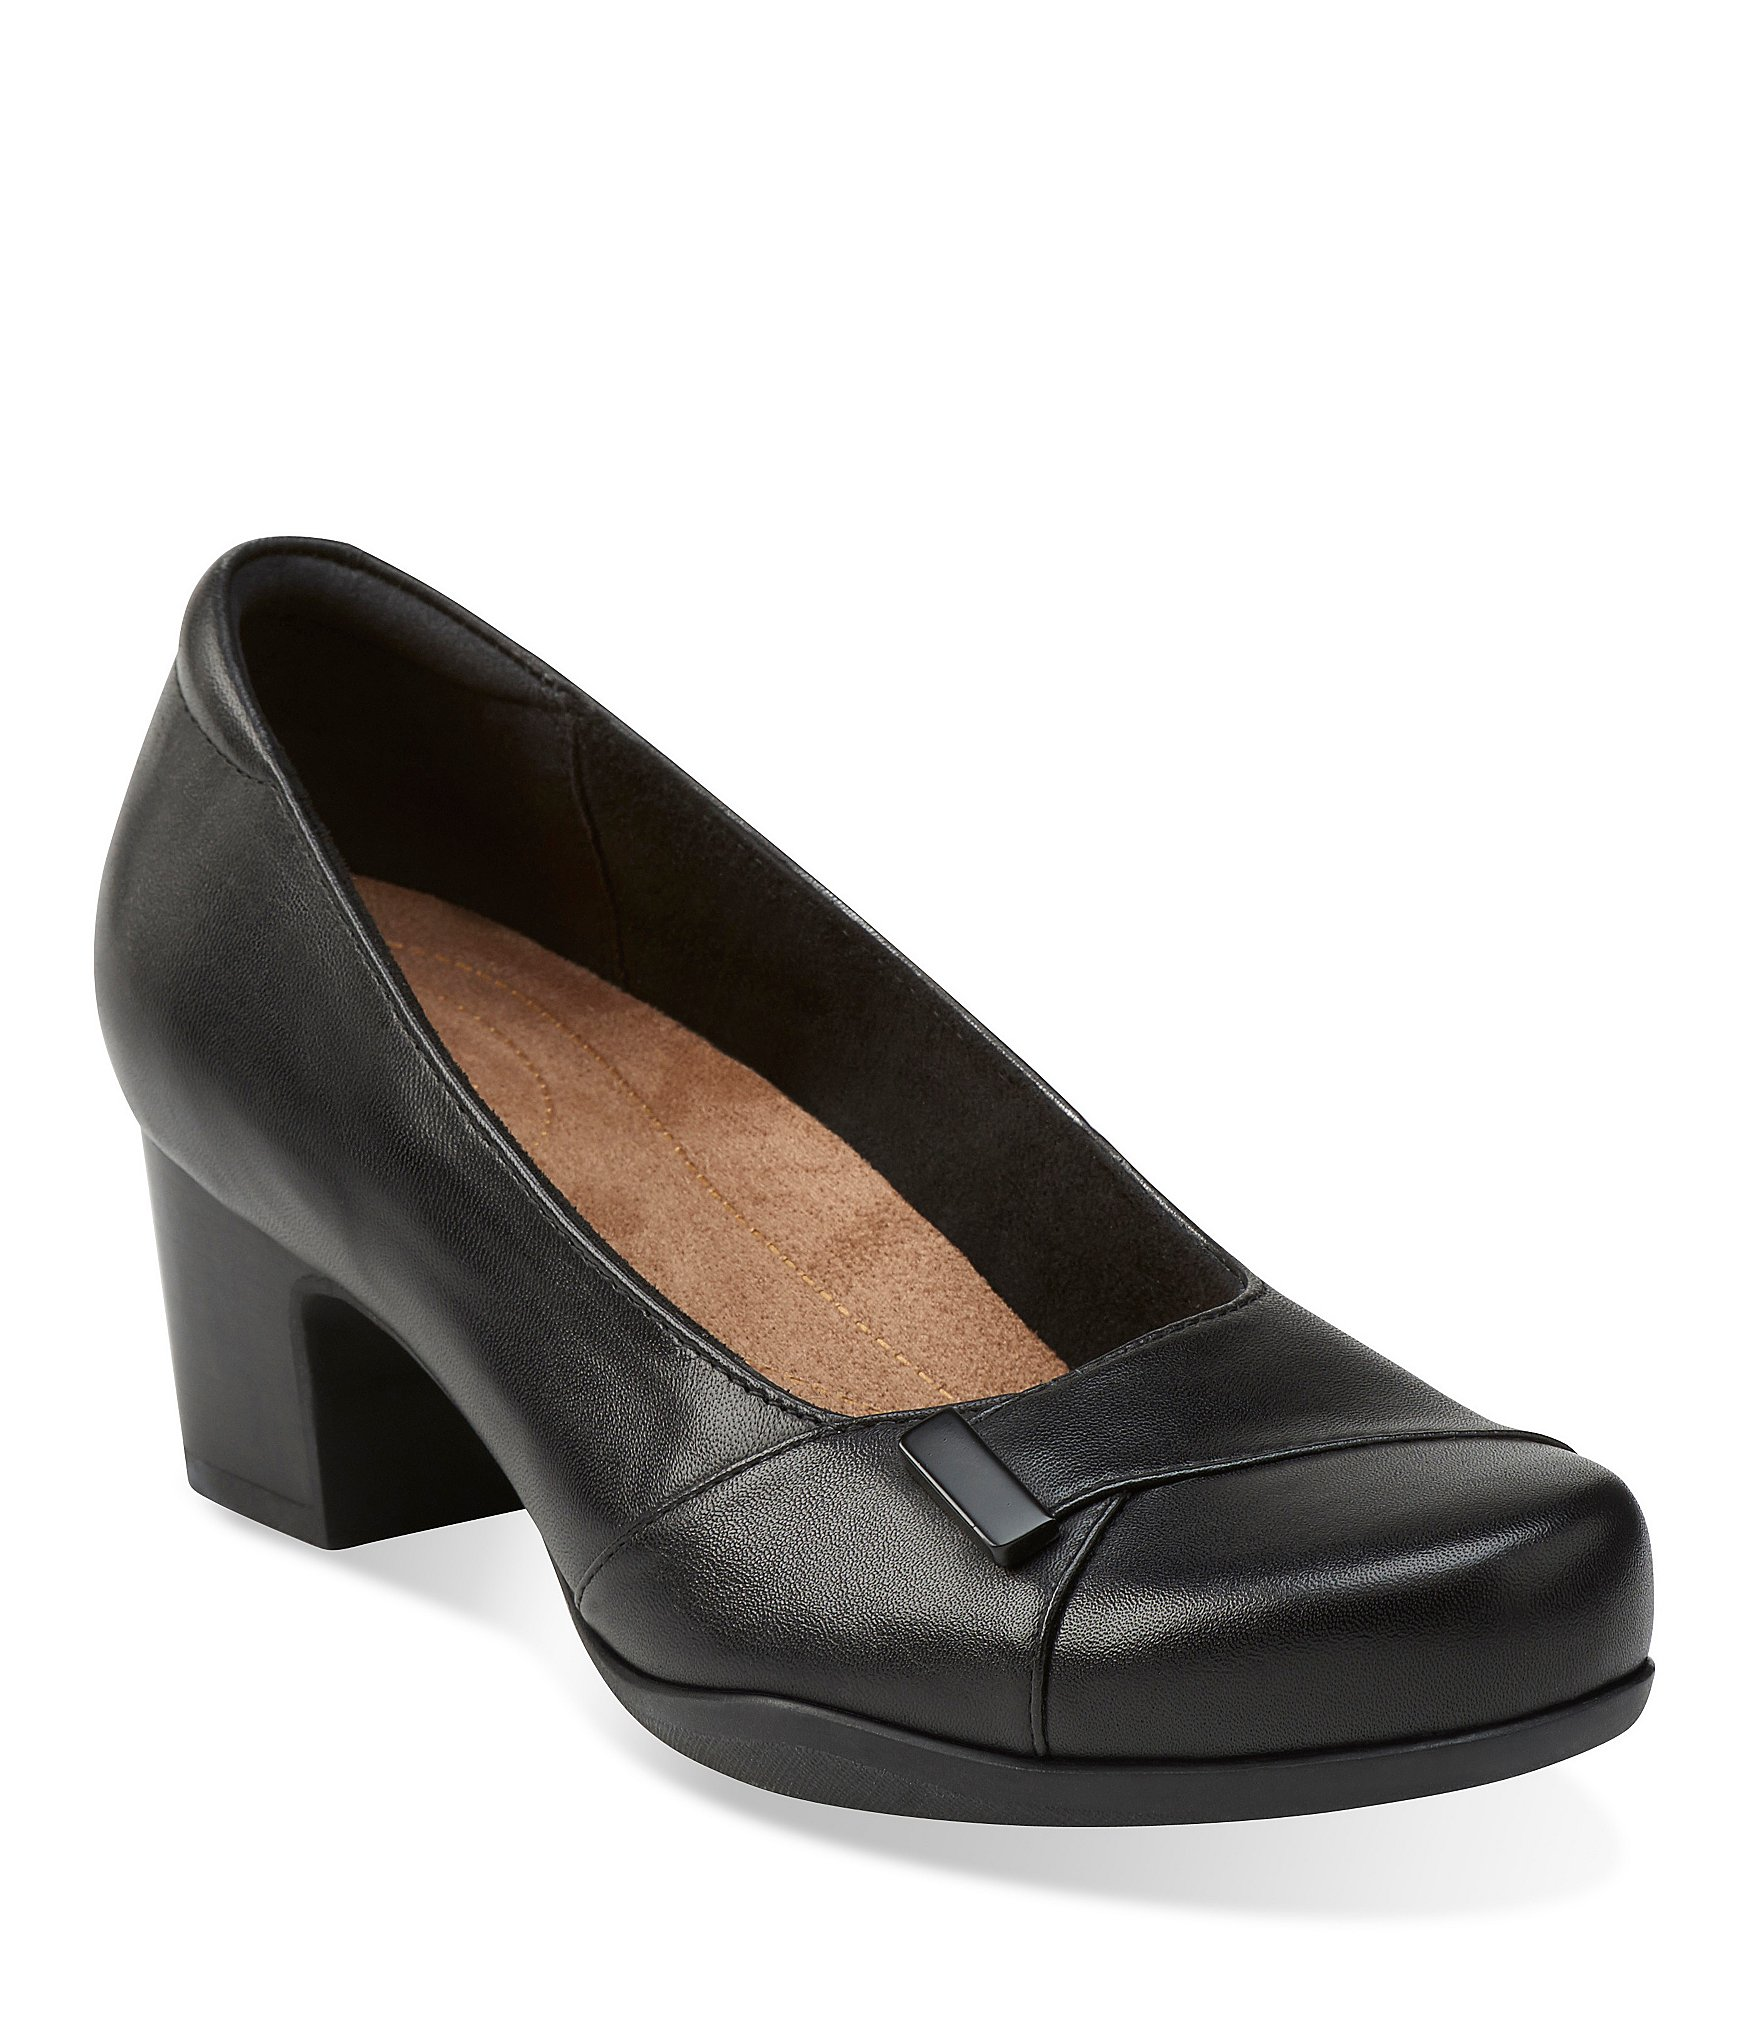 Clarks Shoes For Women At Dillards